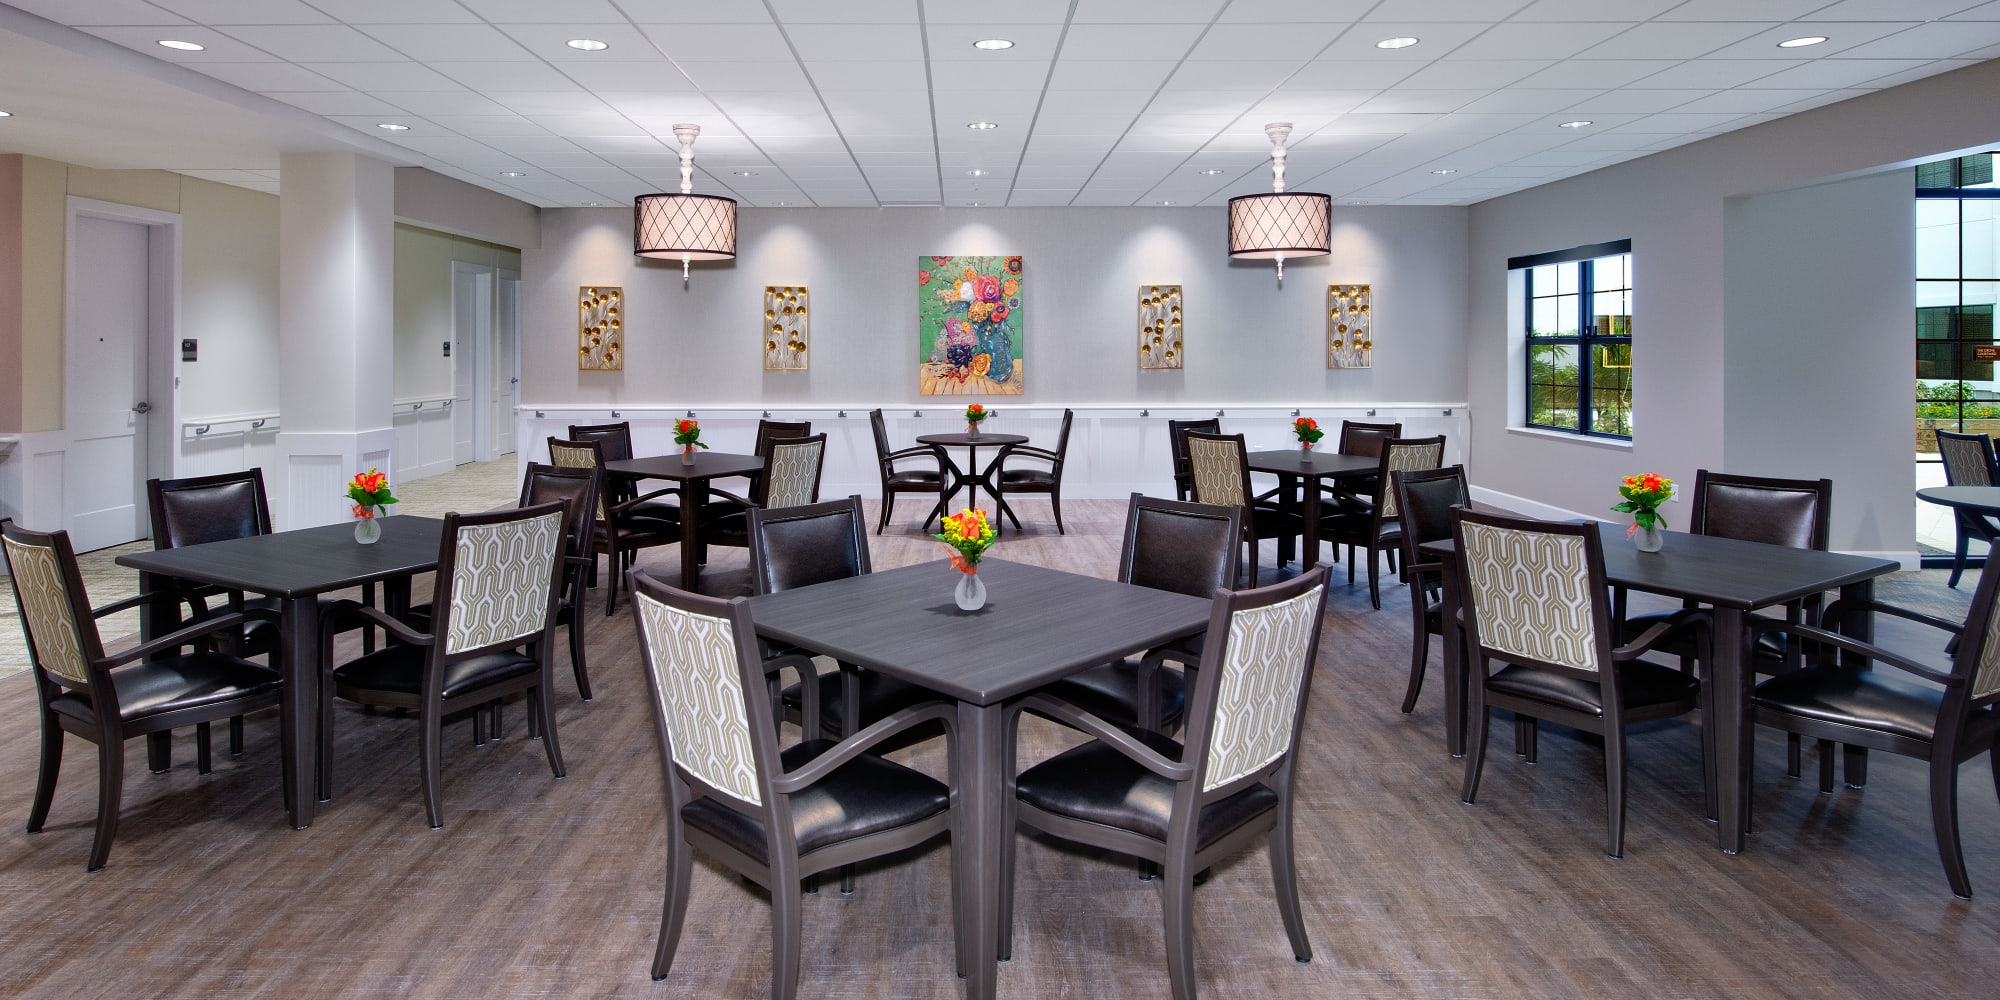 Resident dining room at Keystone Place at Naples Preserve in Naples, Florida.